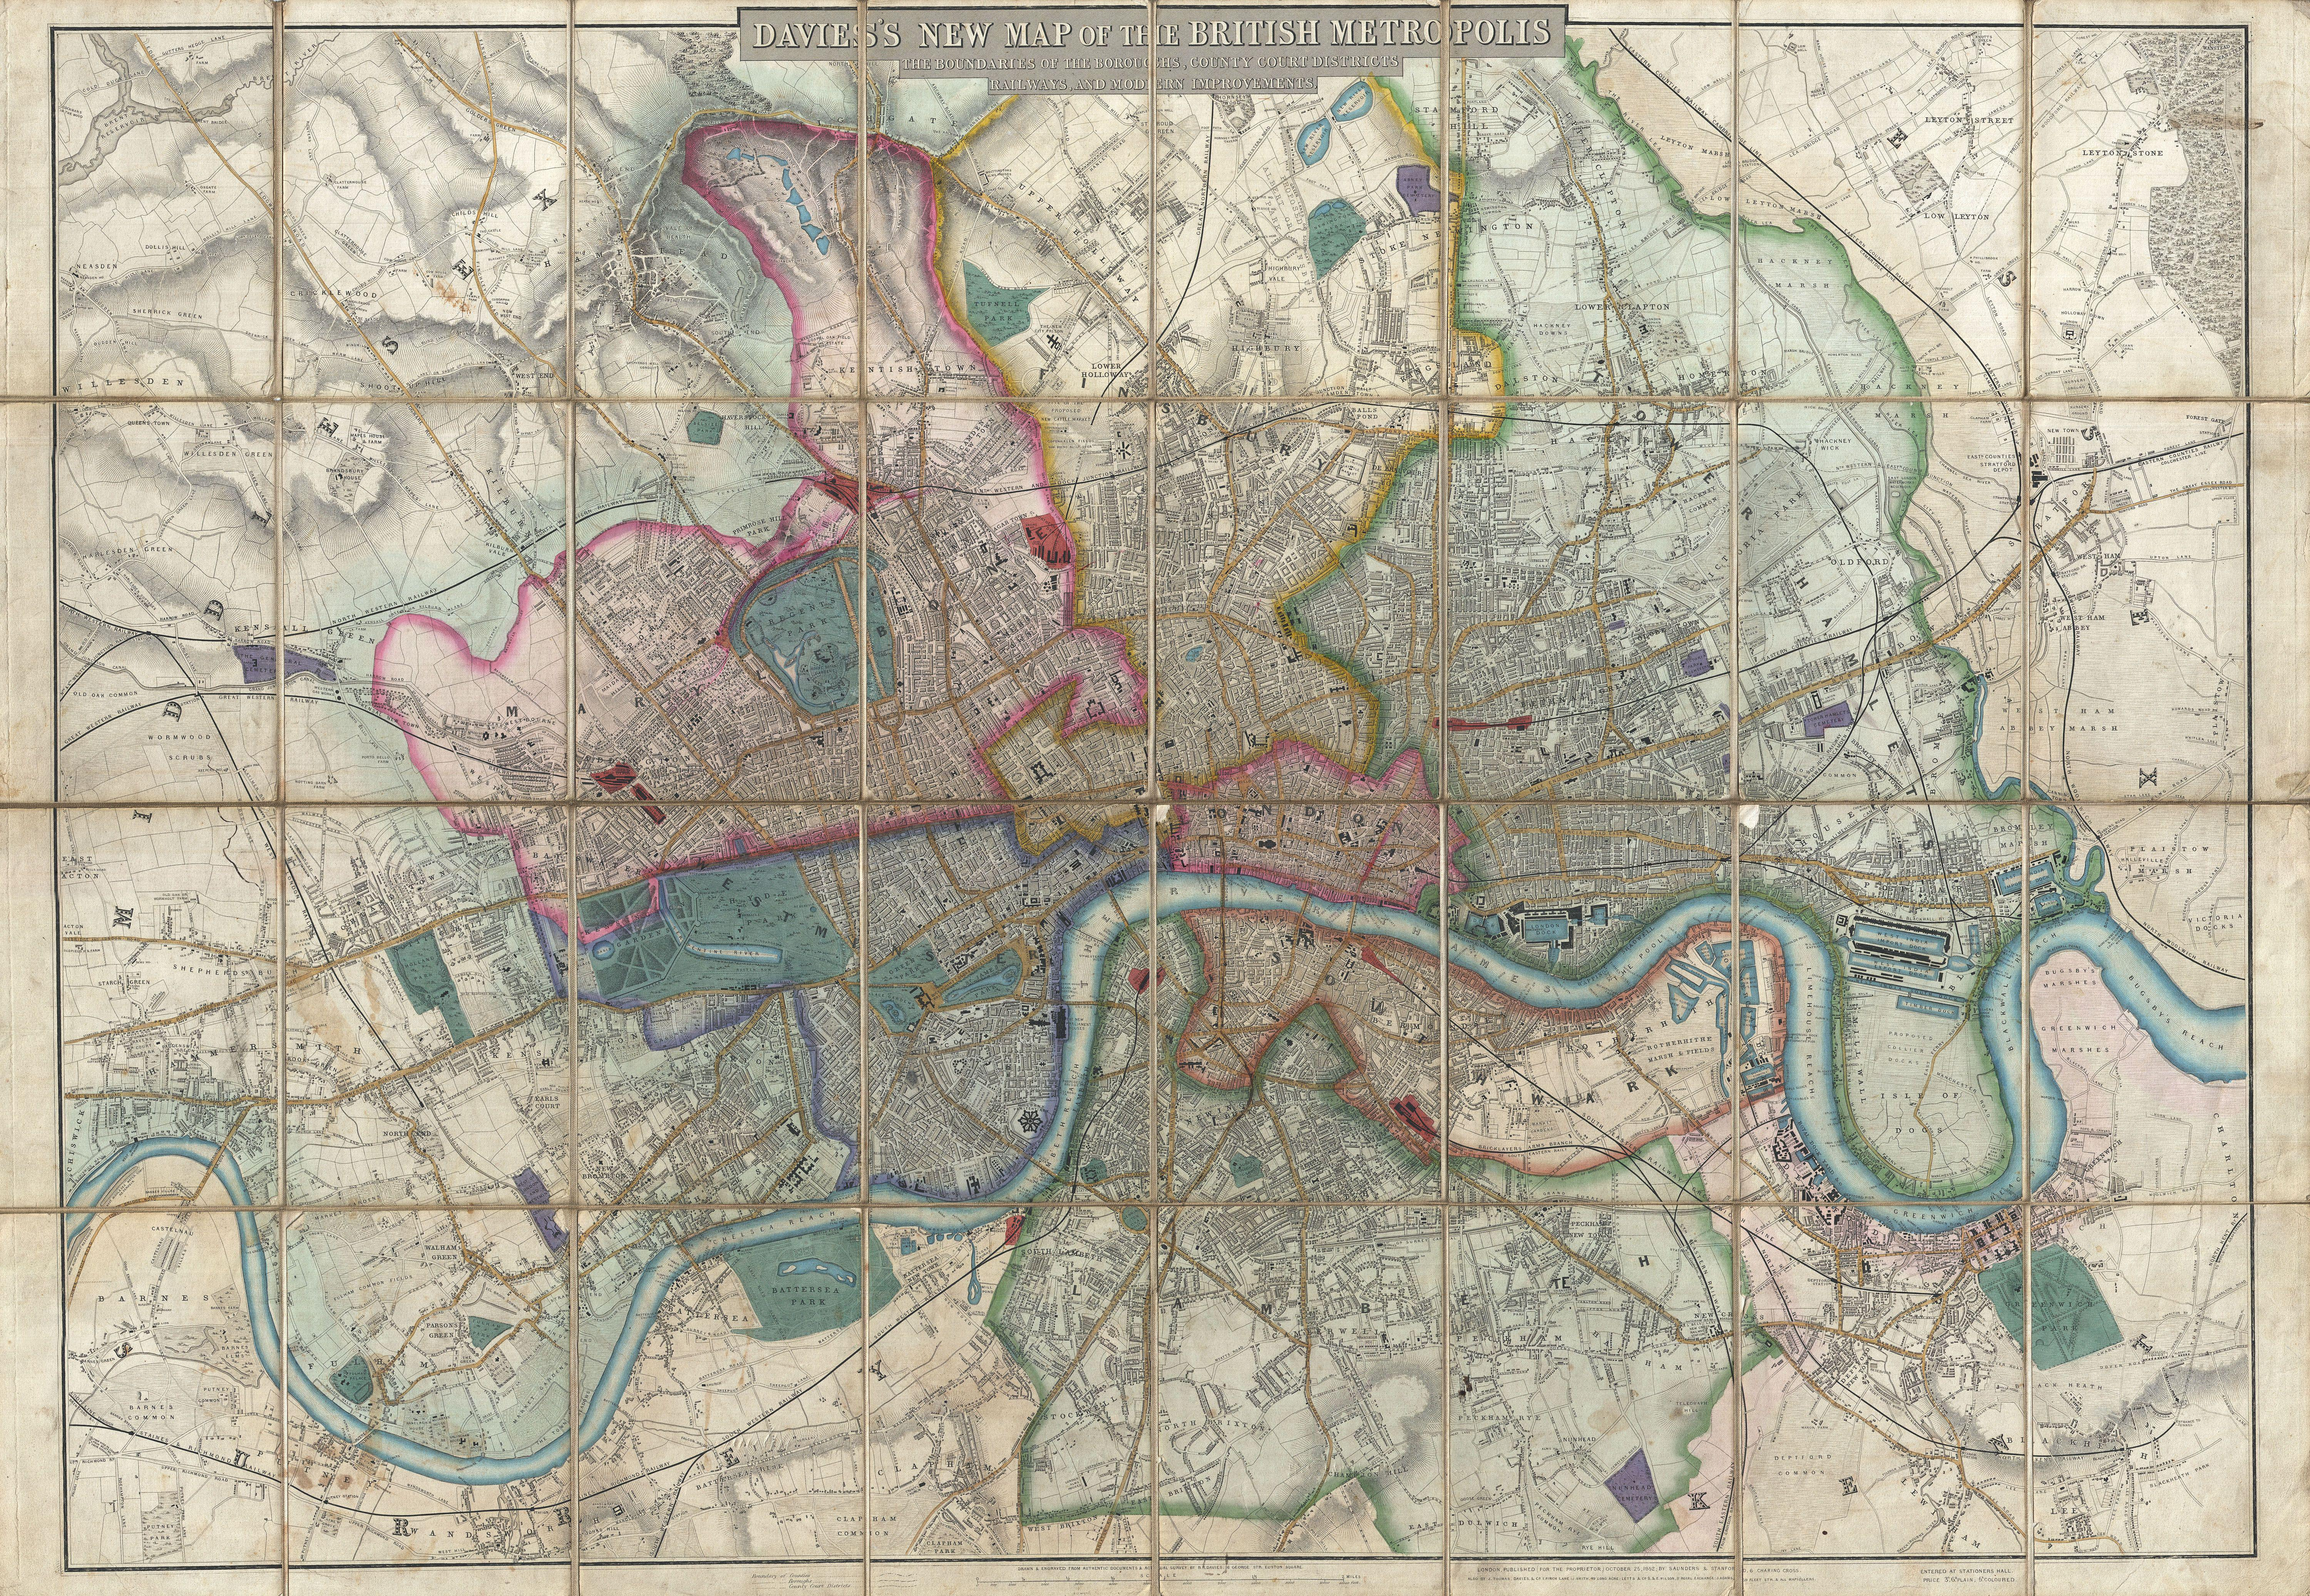 Map Of London England File:1852 Davies Case Map or Pocket Map of London, England  Map Of London England